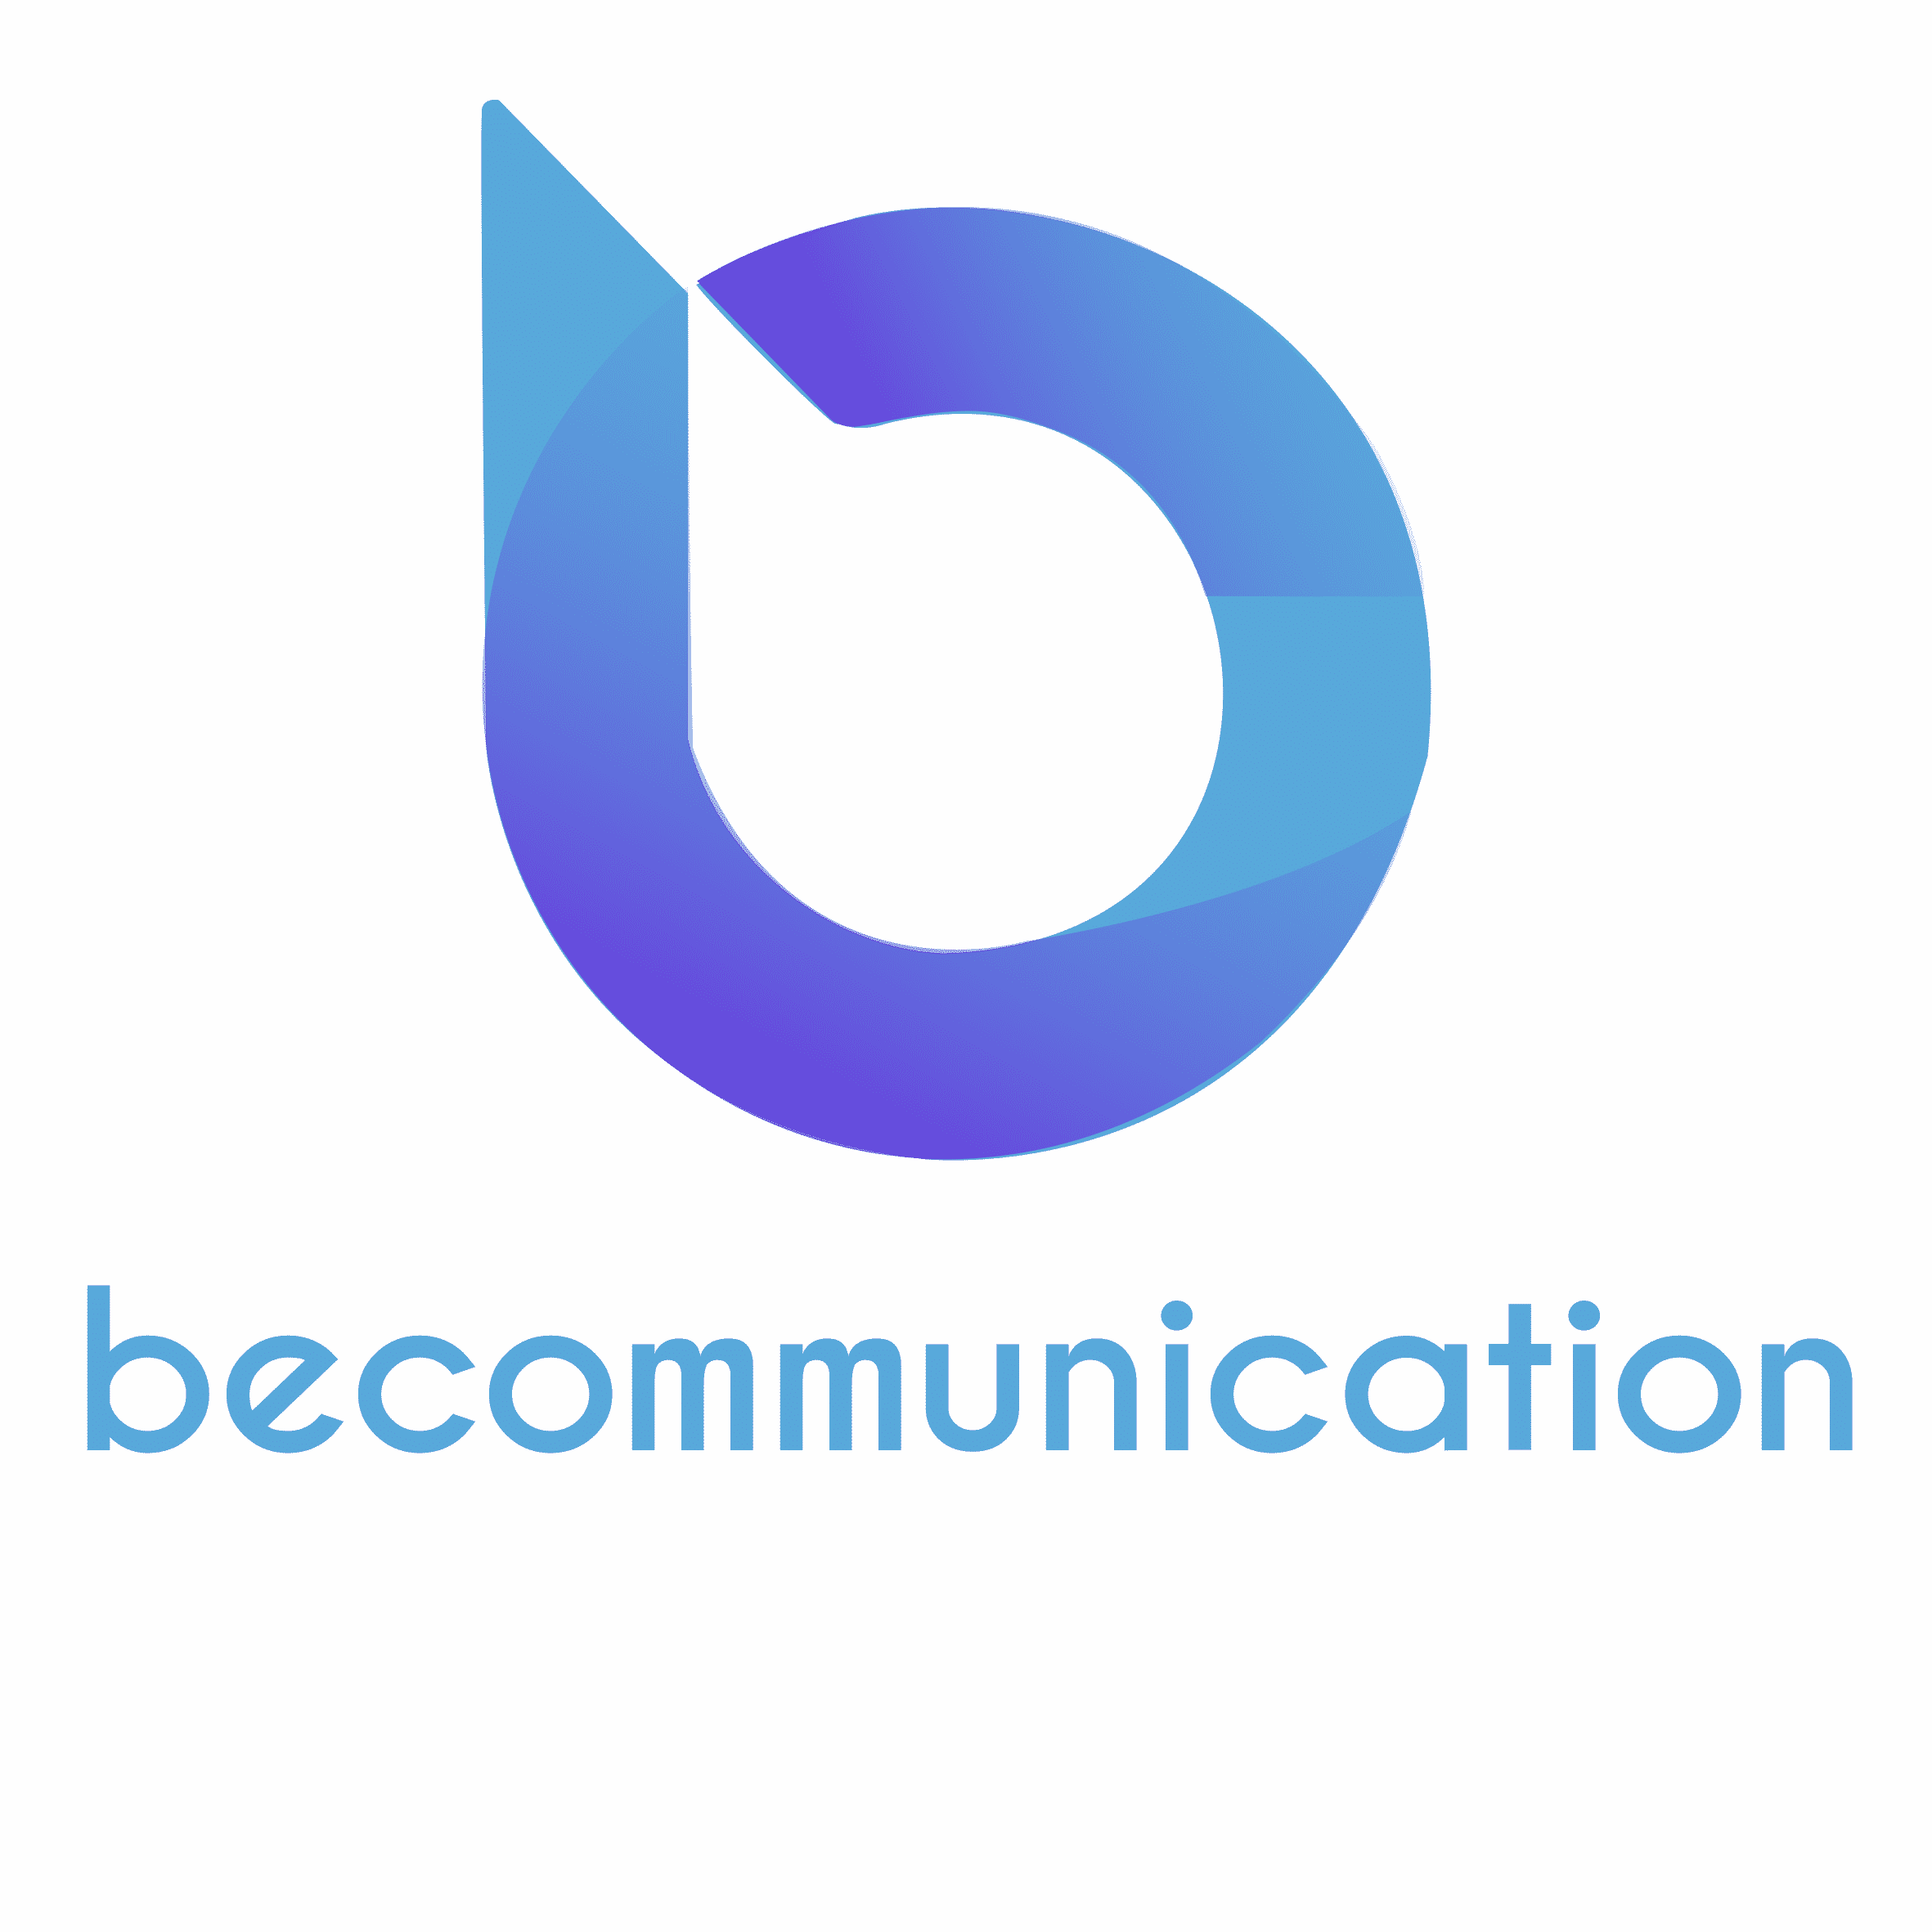 Logo becommunication texte